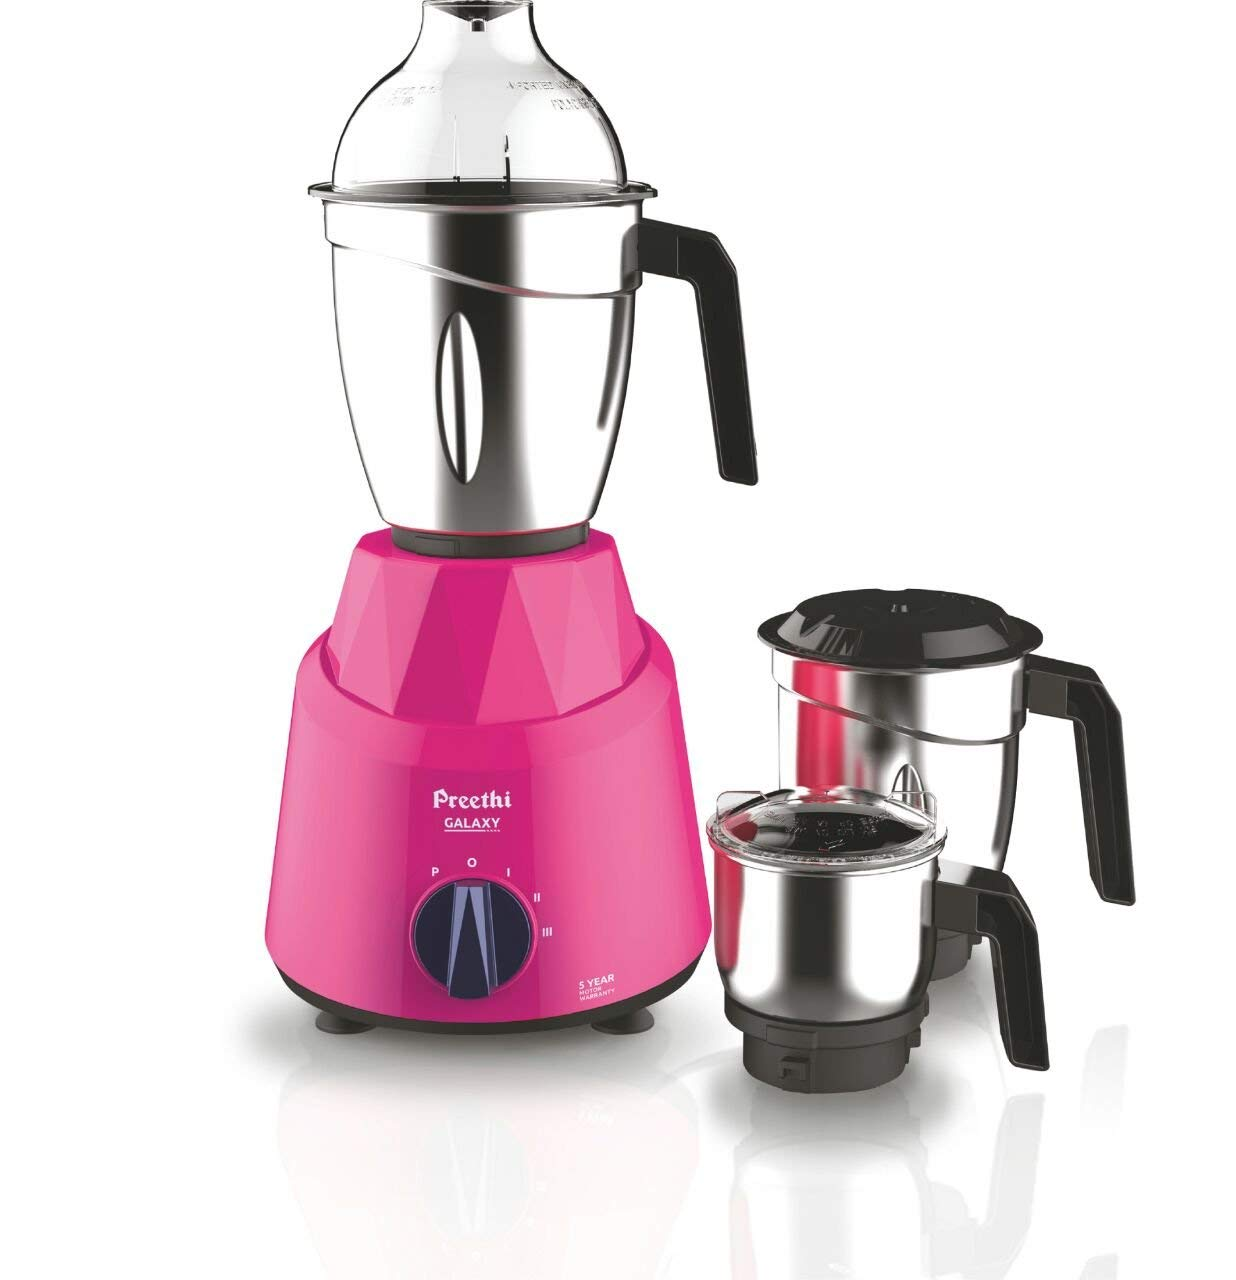 Open-Box & Refurbished (Unused) Preethi Galaxy 750W Mixer Grinder kida.in